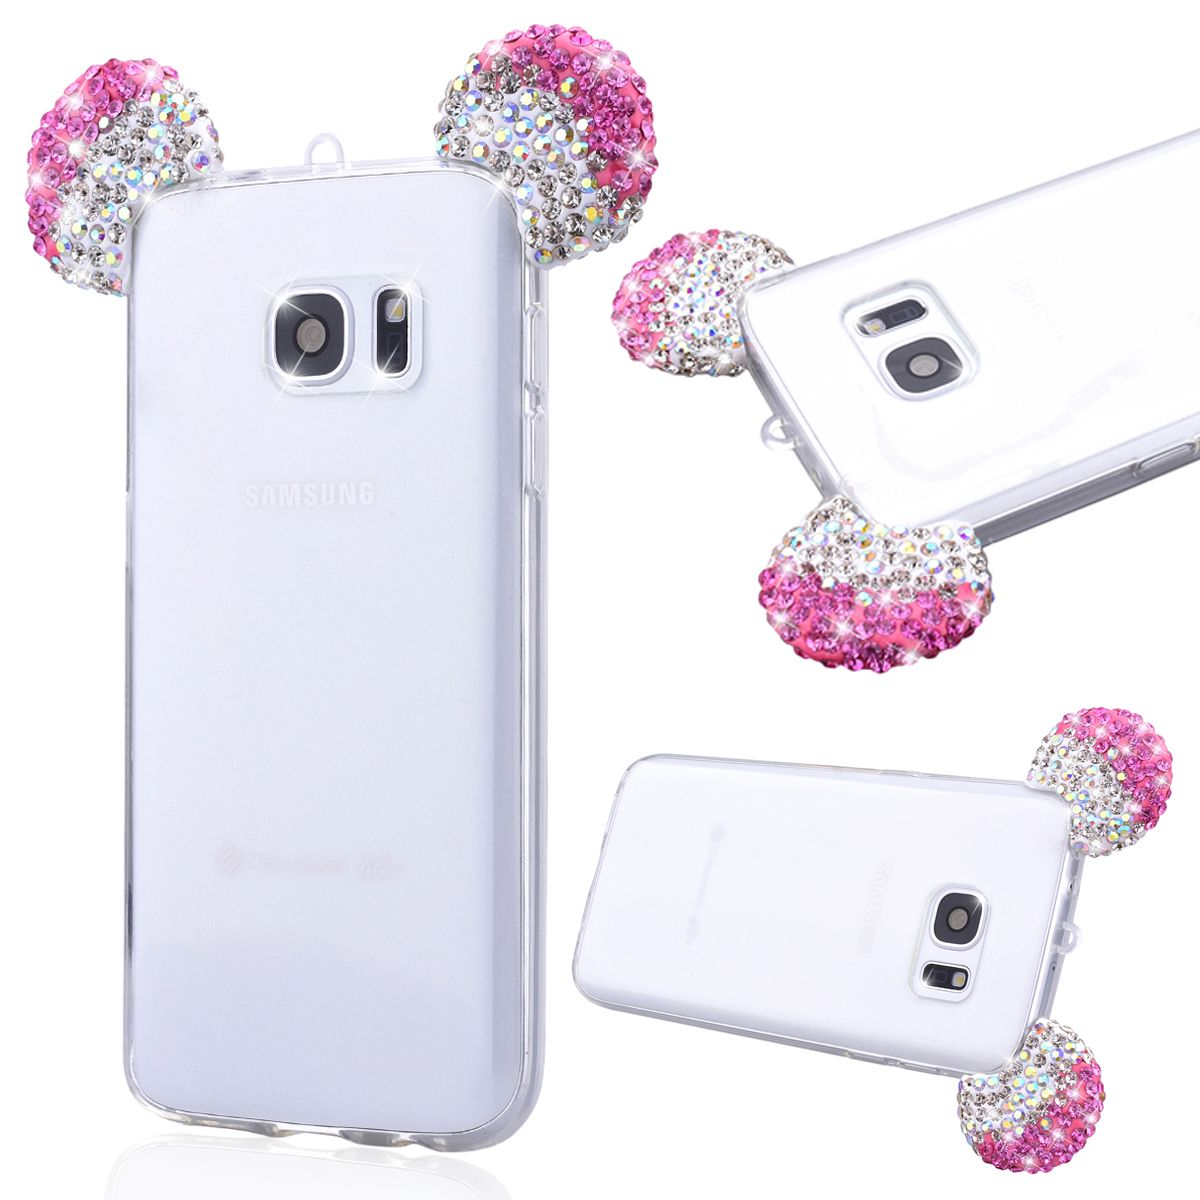 Bling glitter rhinestone 3d mickey mouse ear design cover for Housse galaxy s7